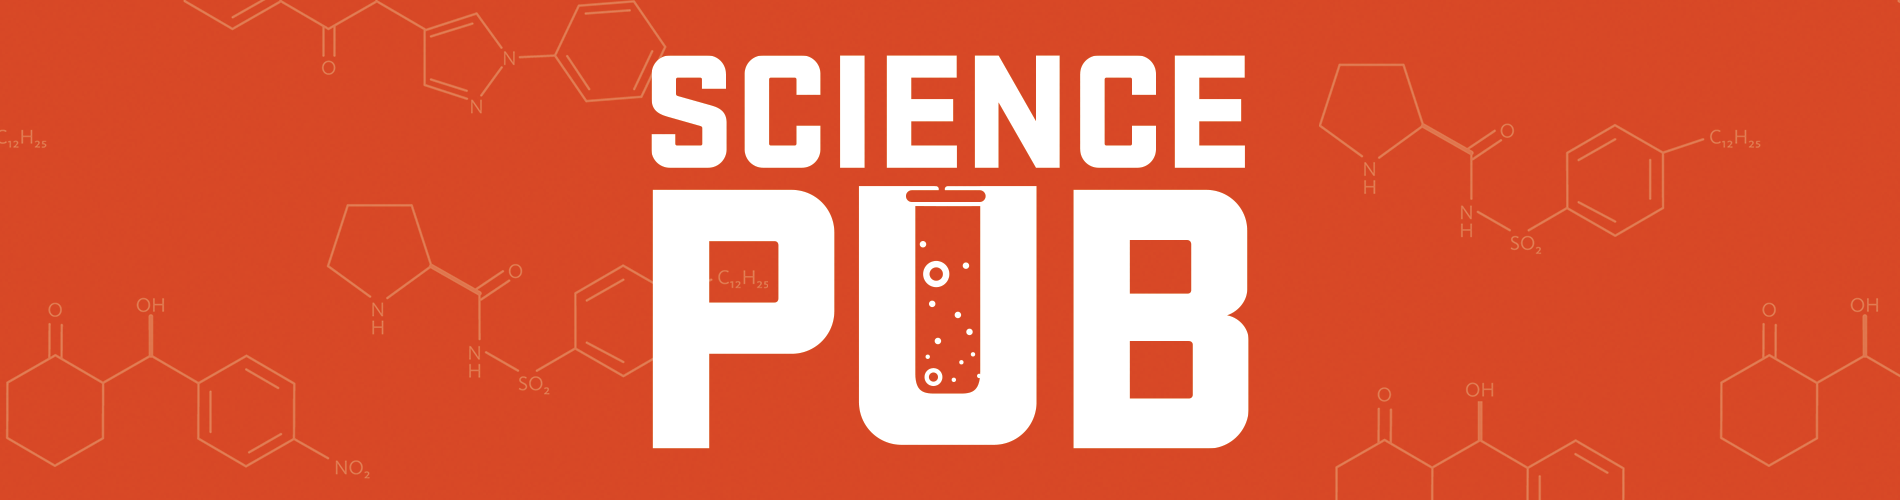 Science Pub Header